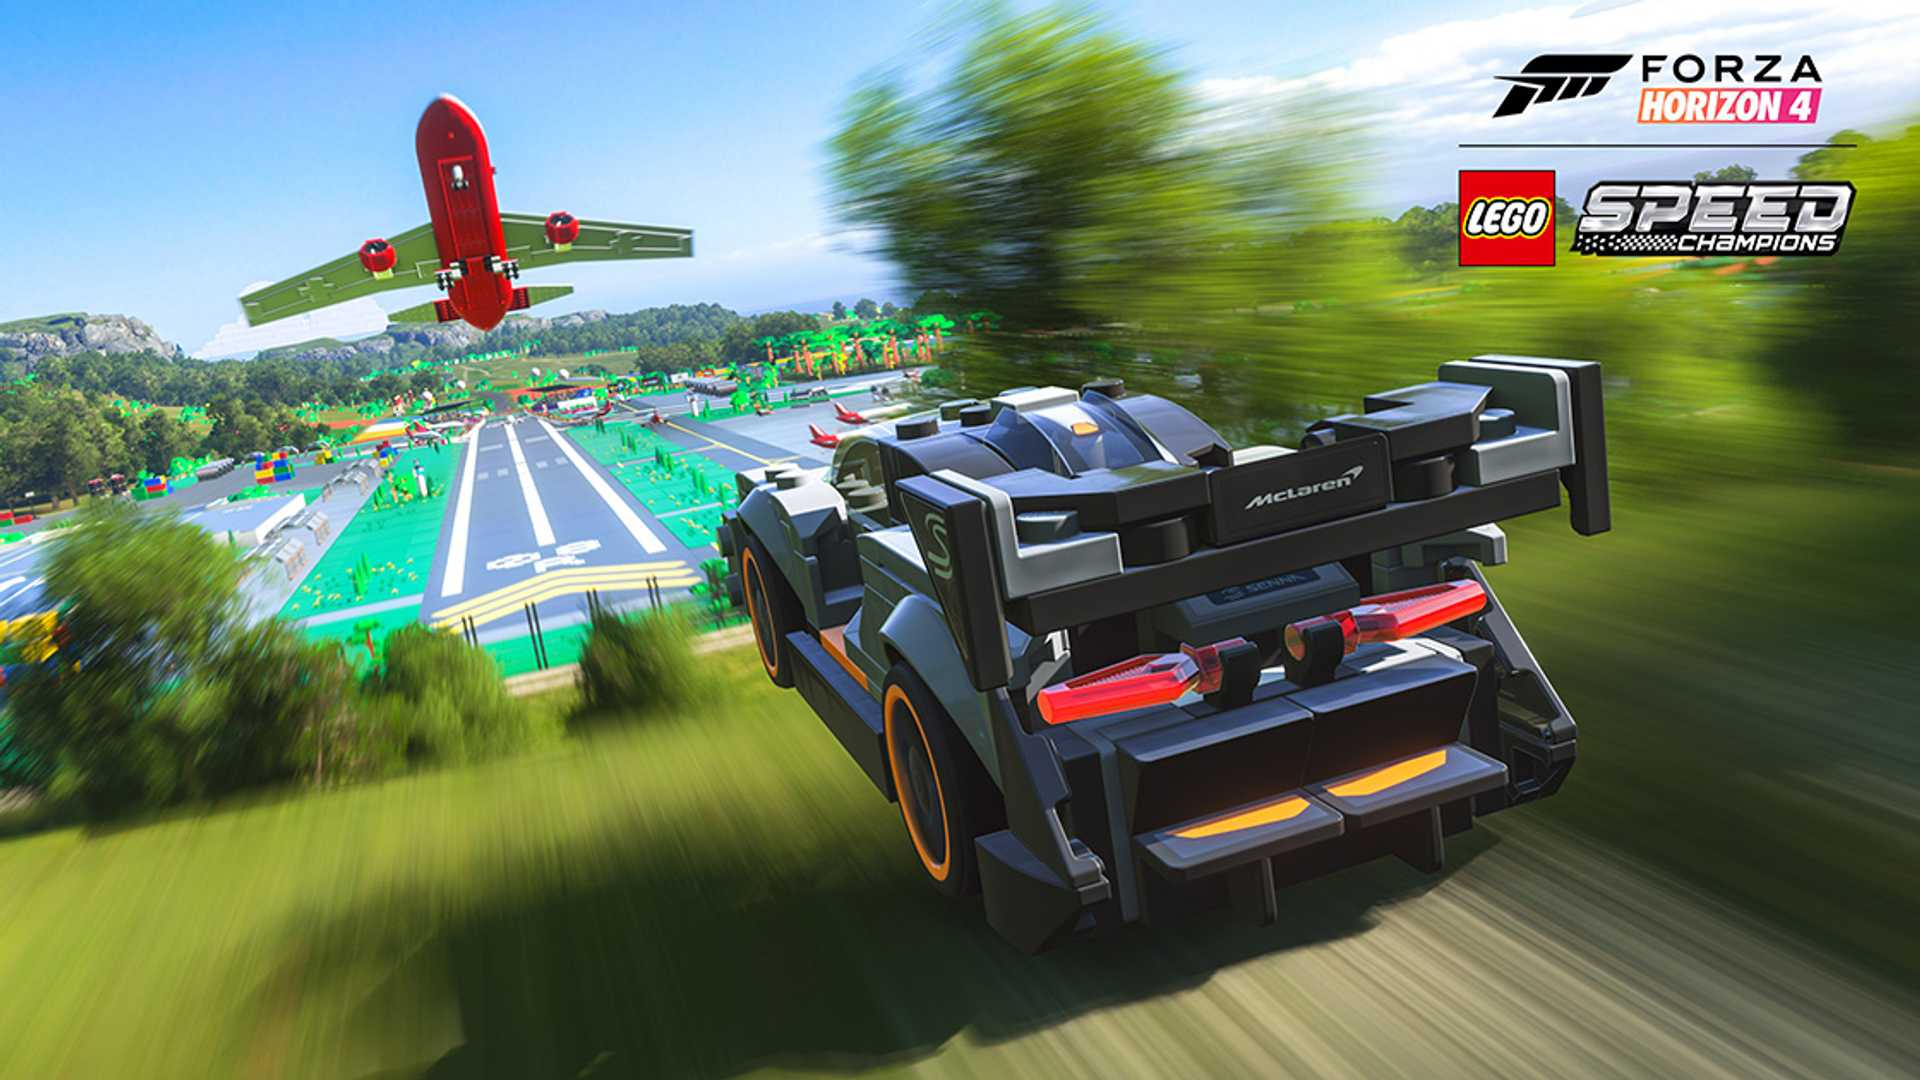 forza-horizon-4-lego-speed-champions-5